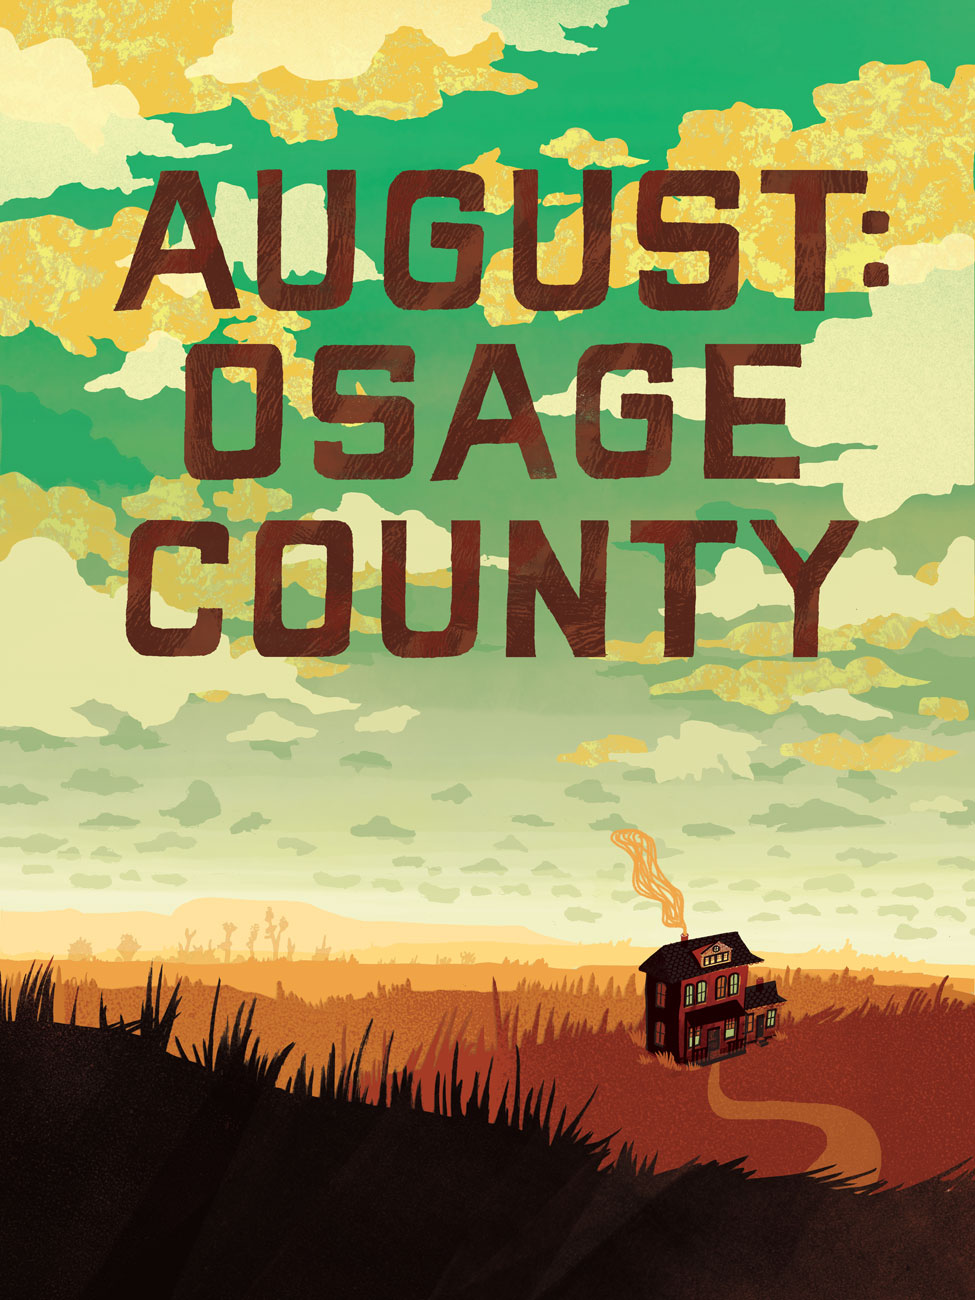 August_Osage_County_with_text.jpg